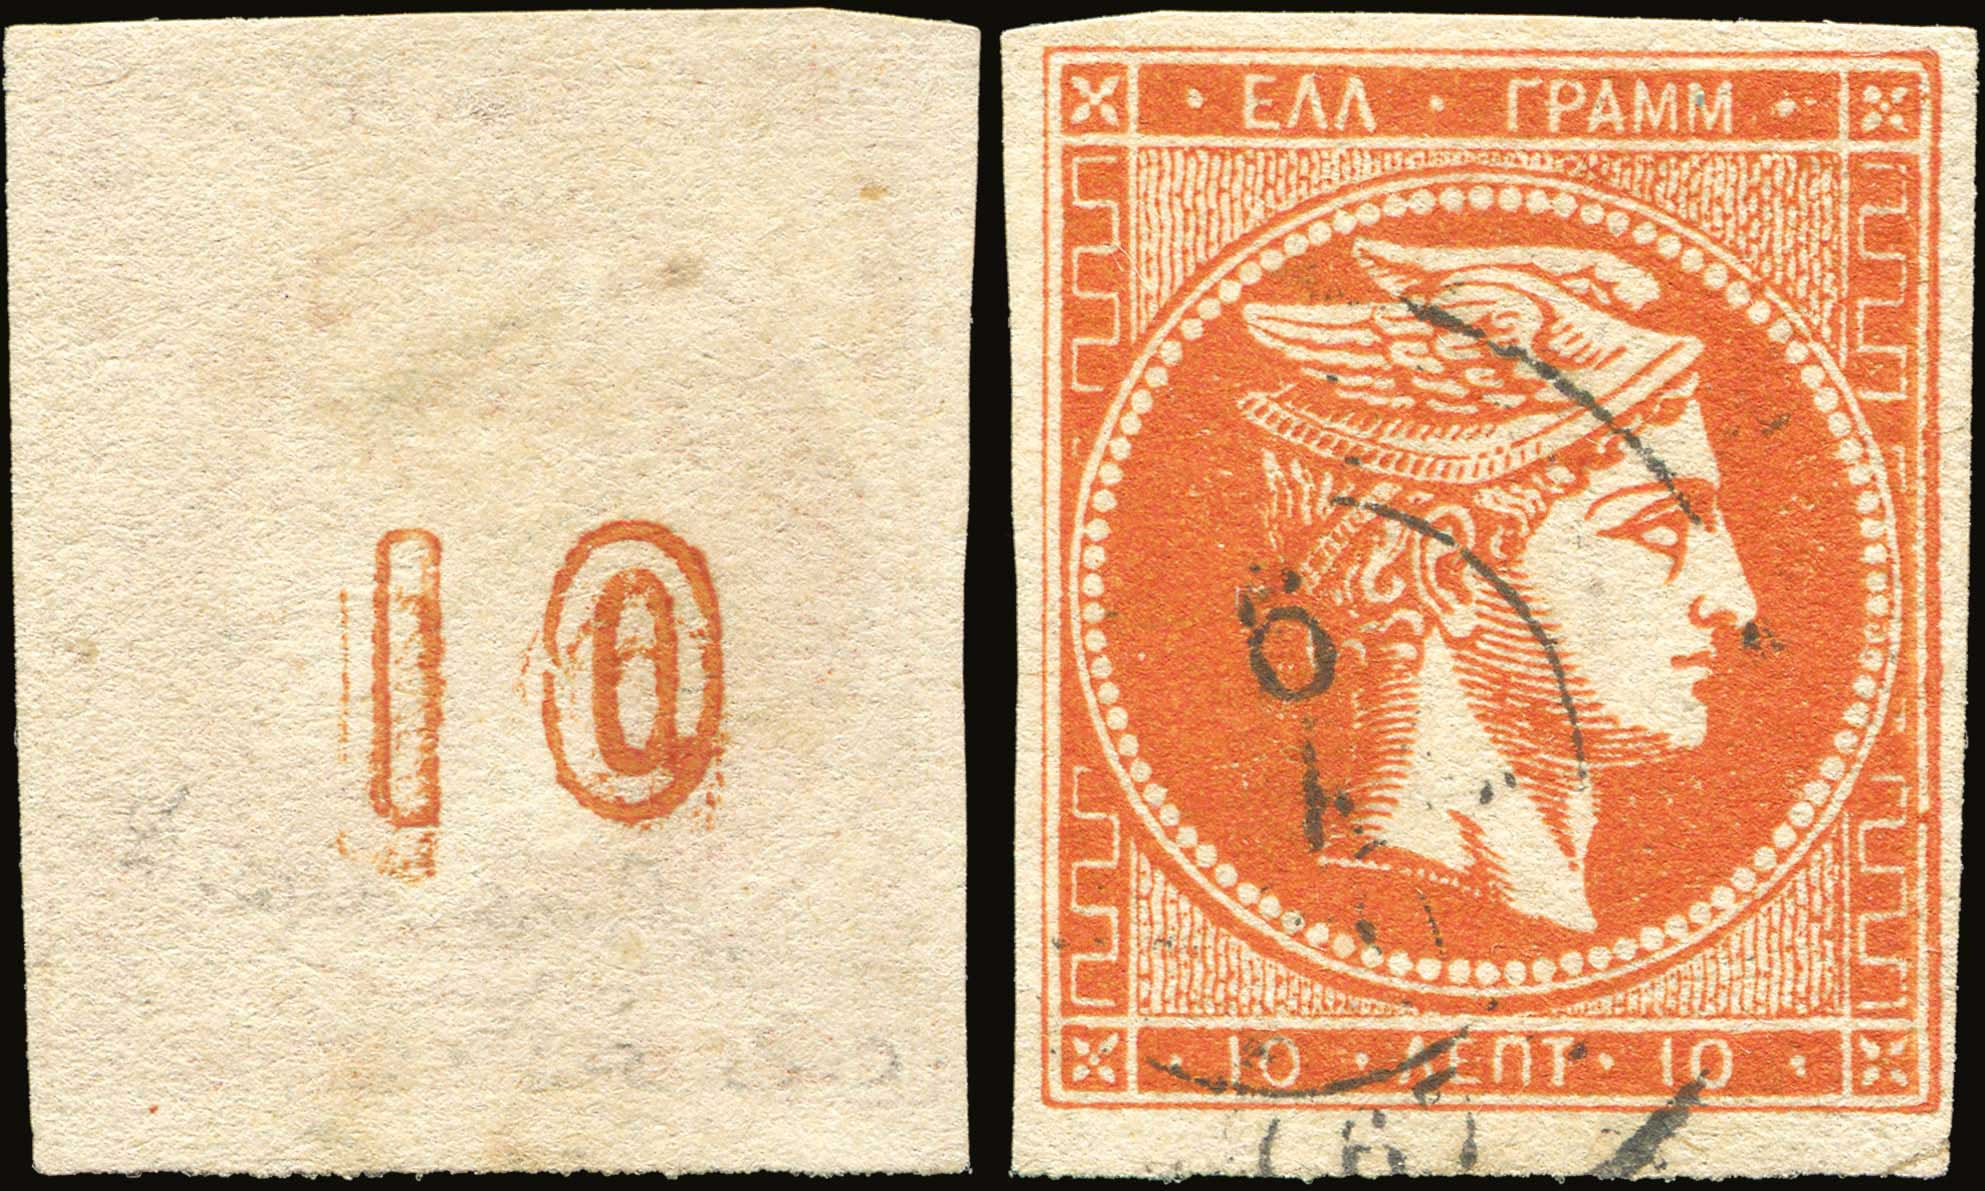 Lot 185 - -  LARGE HERMES HEAD 1875/80 cream paper -  A. Karamitsos Public Auction 645 General Stamp Sale